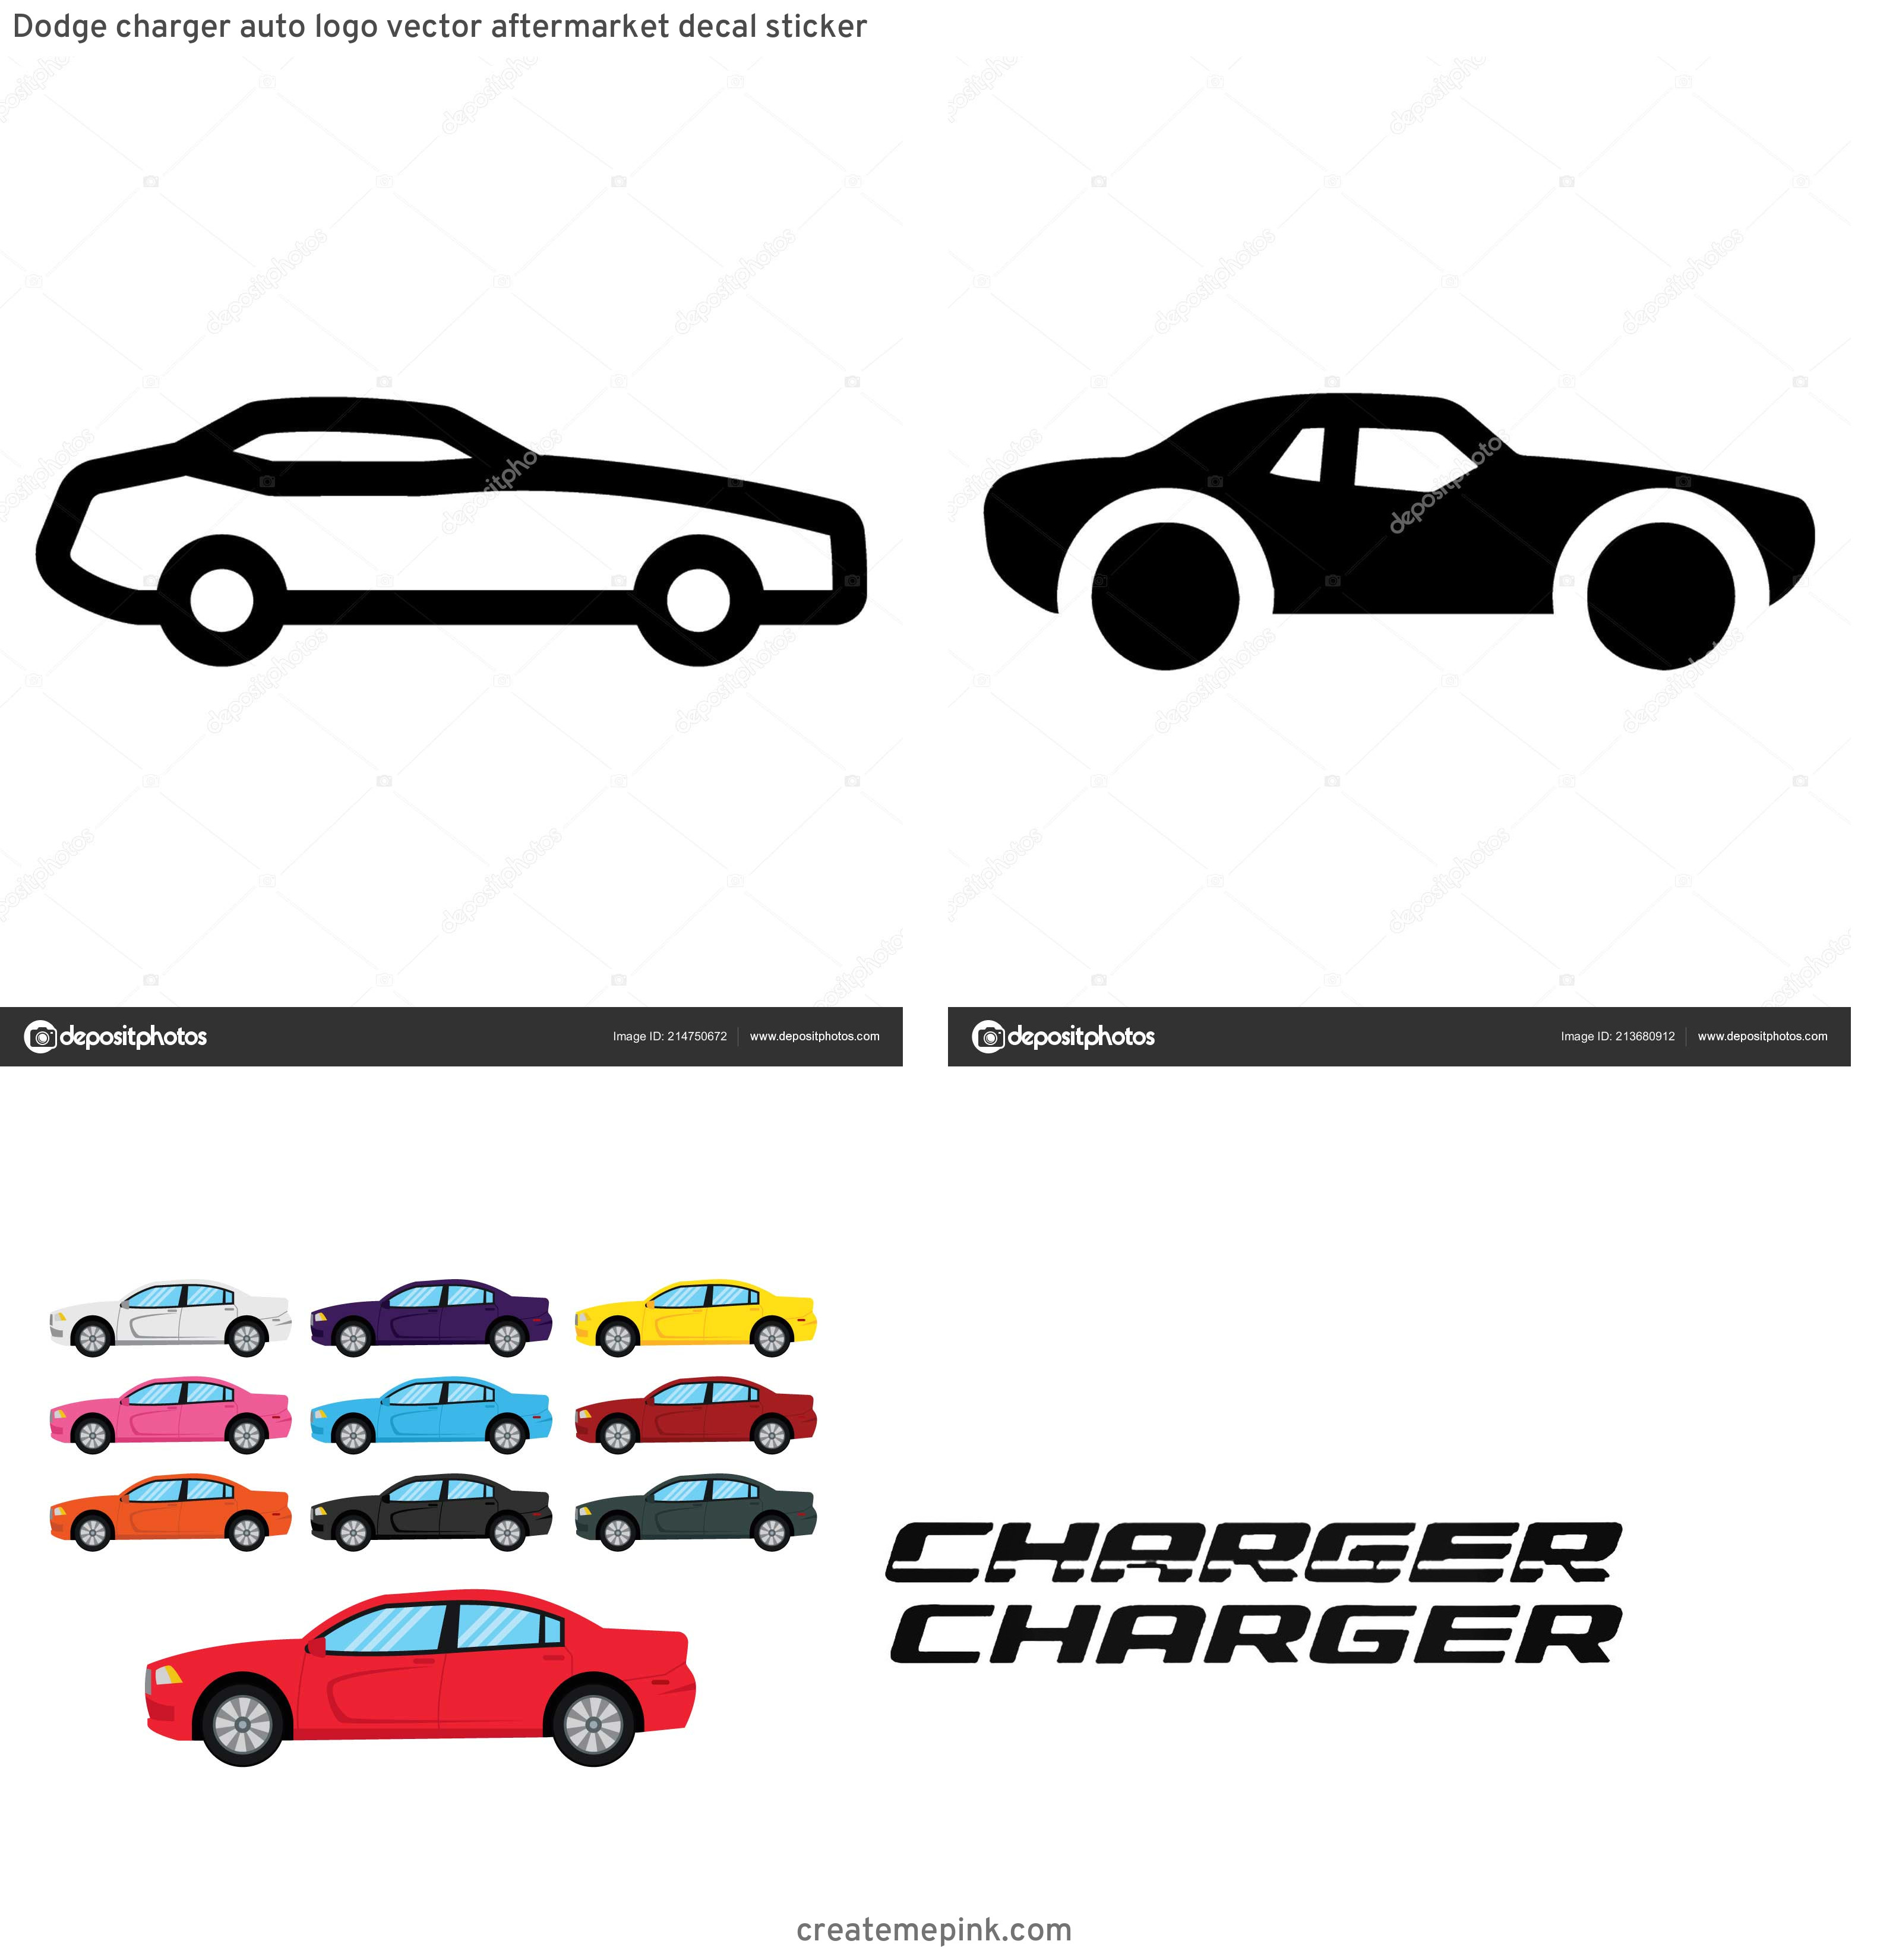 Dodge Charger Vector: Dodge Charger Auto Logo Vector Aftermarket Decal Sticker